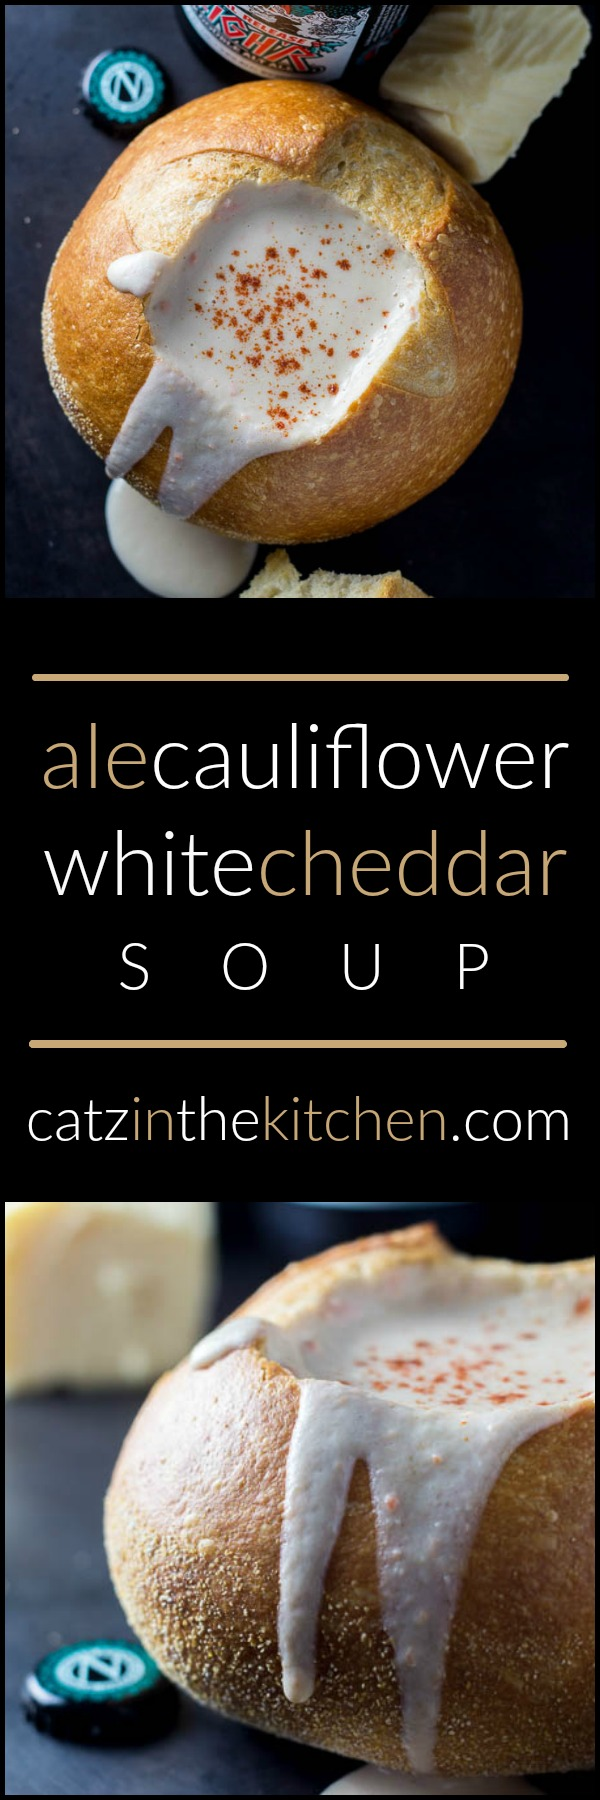 Ale, Cauliflower, & White Cheddar Soup | Catz in the Kitchen | catzinthekitchen.com | #whitecheddar #soup #beer